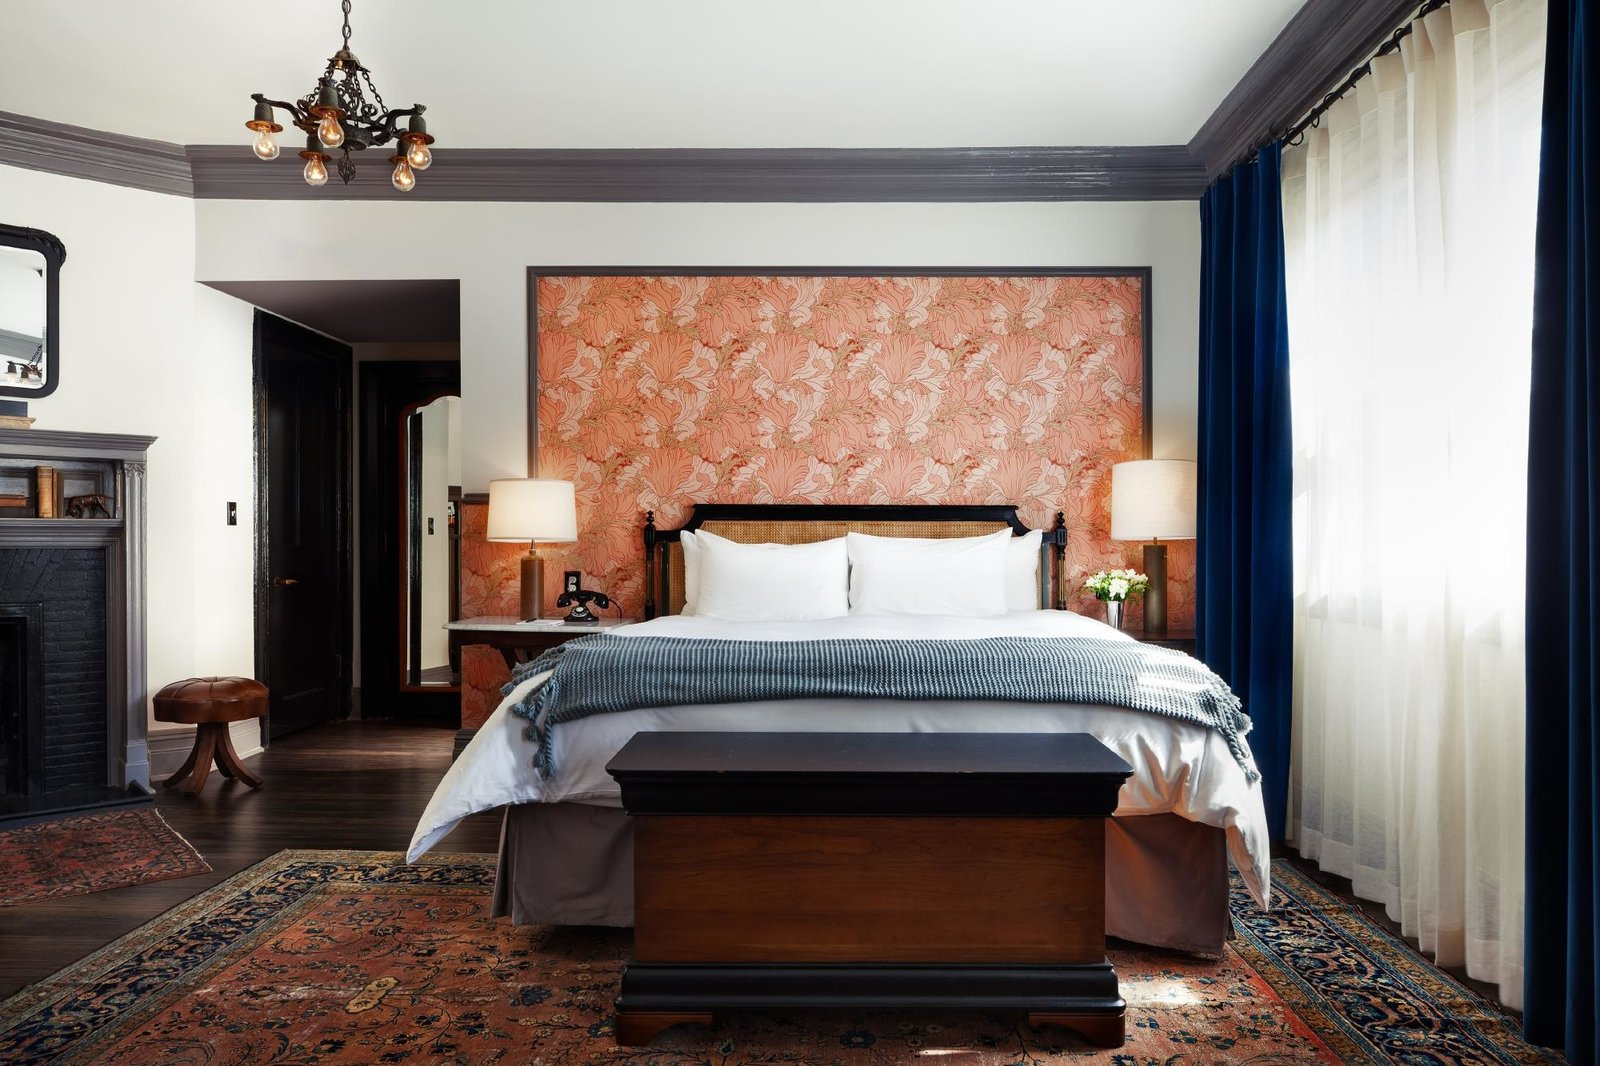 Bedroom, Bed, Pendant Lighting, Night Stands, Rug Floor, Dark Hardwood Floor, and Table Lighting  The High Line Hotel